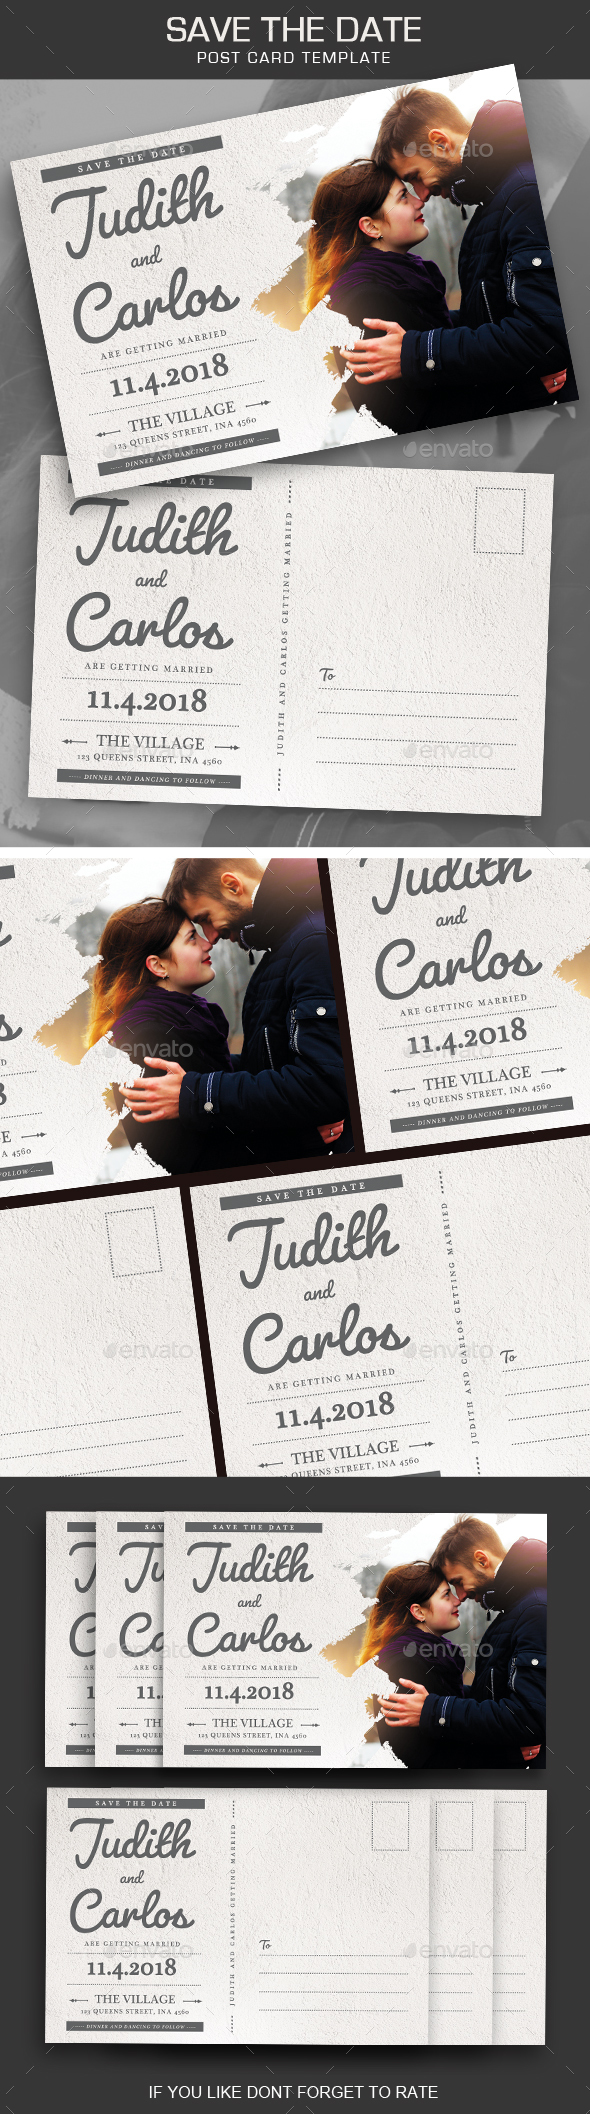 Save the Date Post Card - Weddings Cards & Invites